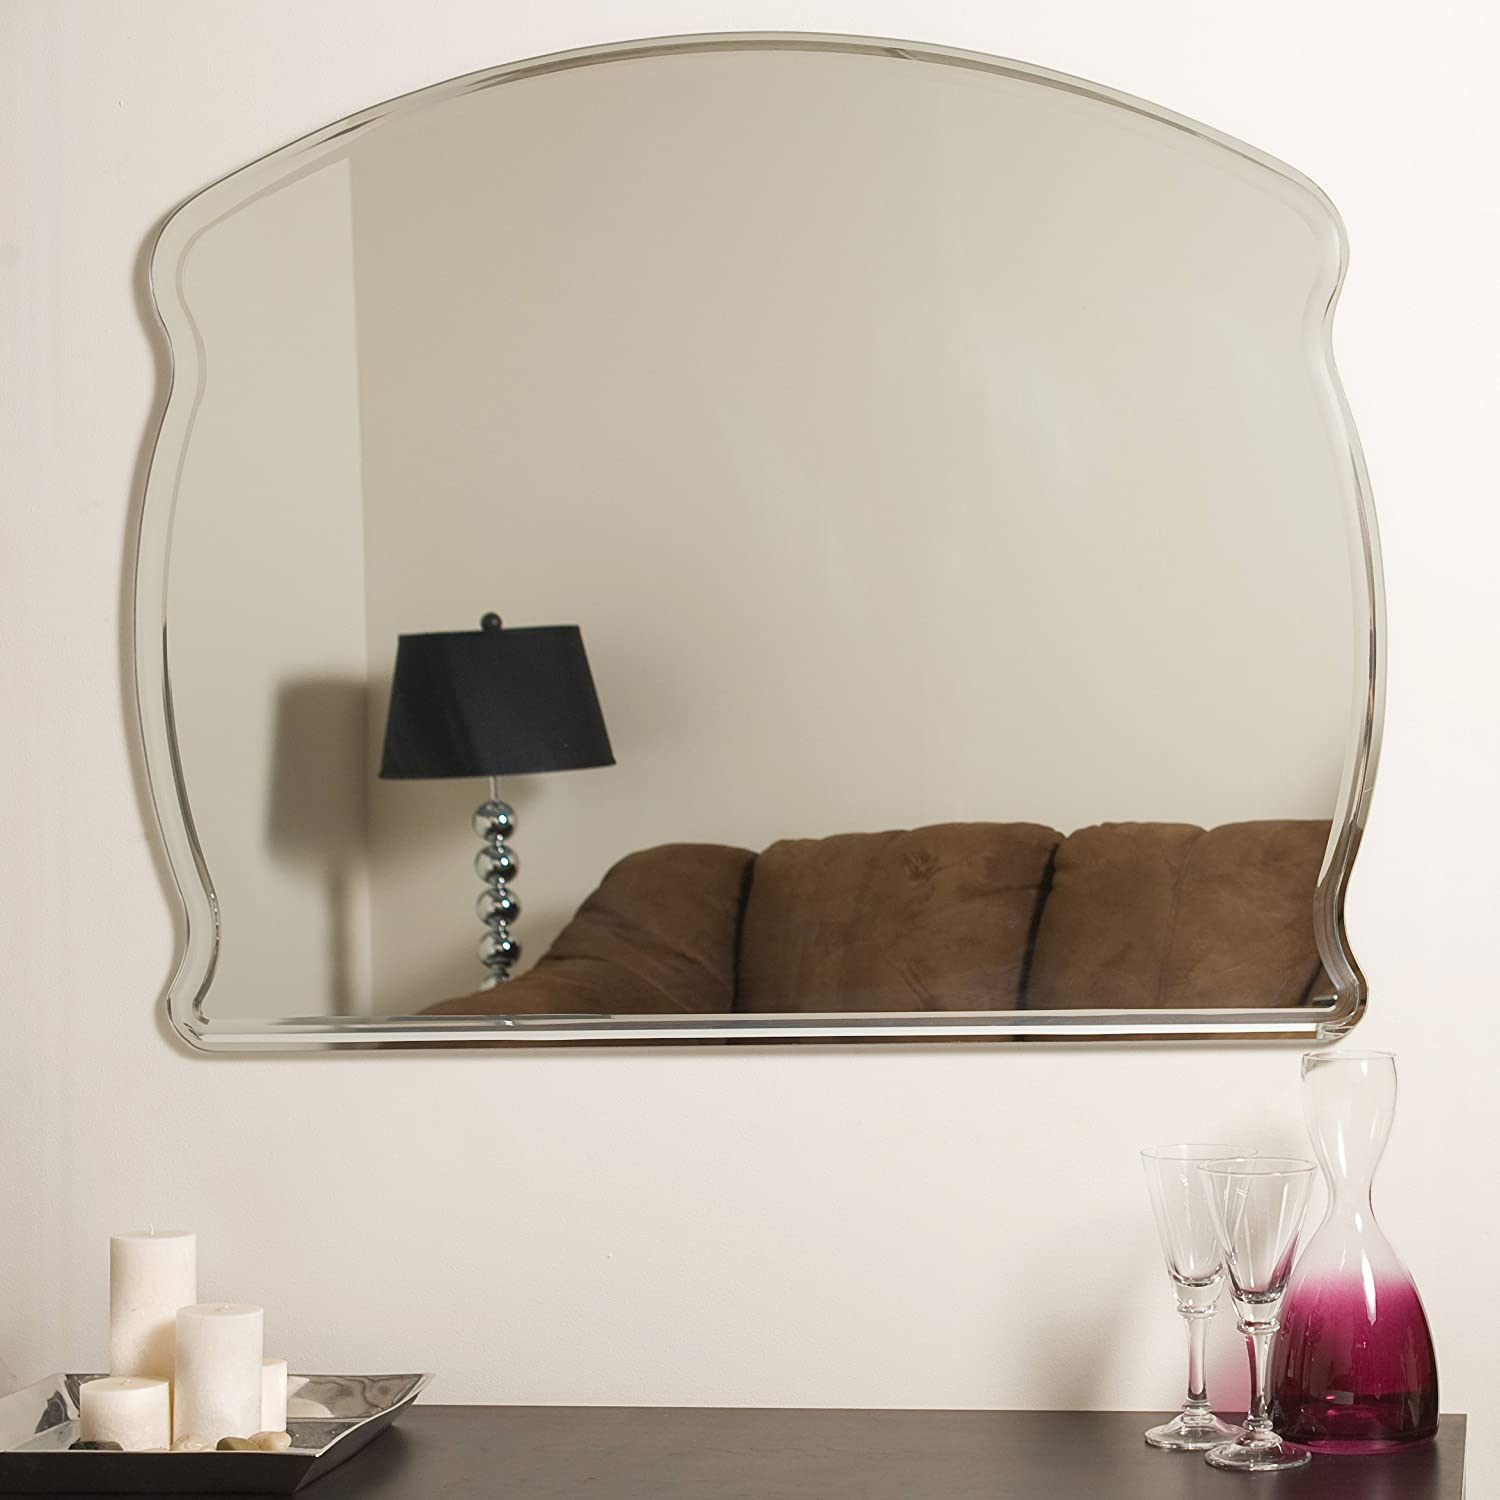 Amazon decor wonderland frameless wide wall mirror home amazon decor wonderland frameless wide wall mirror home kitchen amipublicfo Choice Image